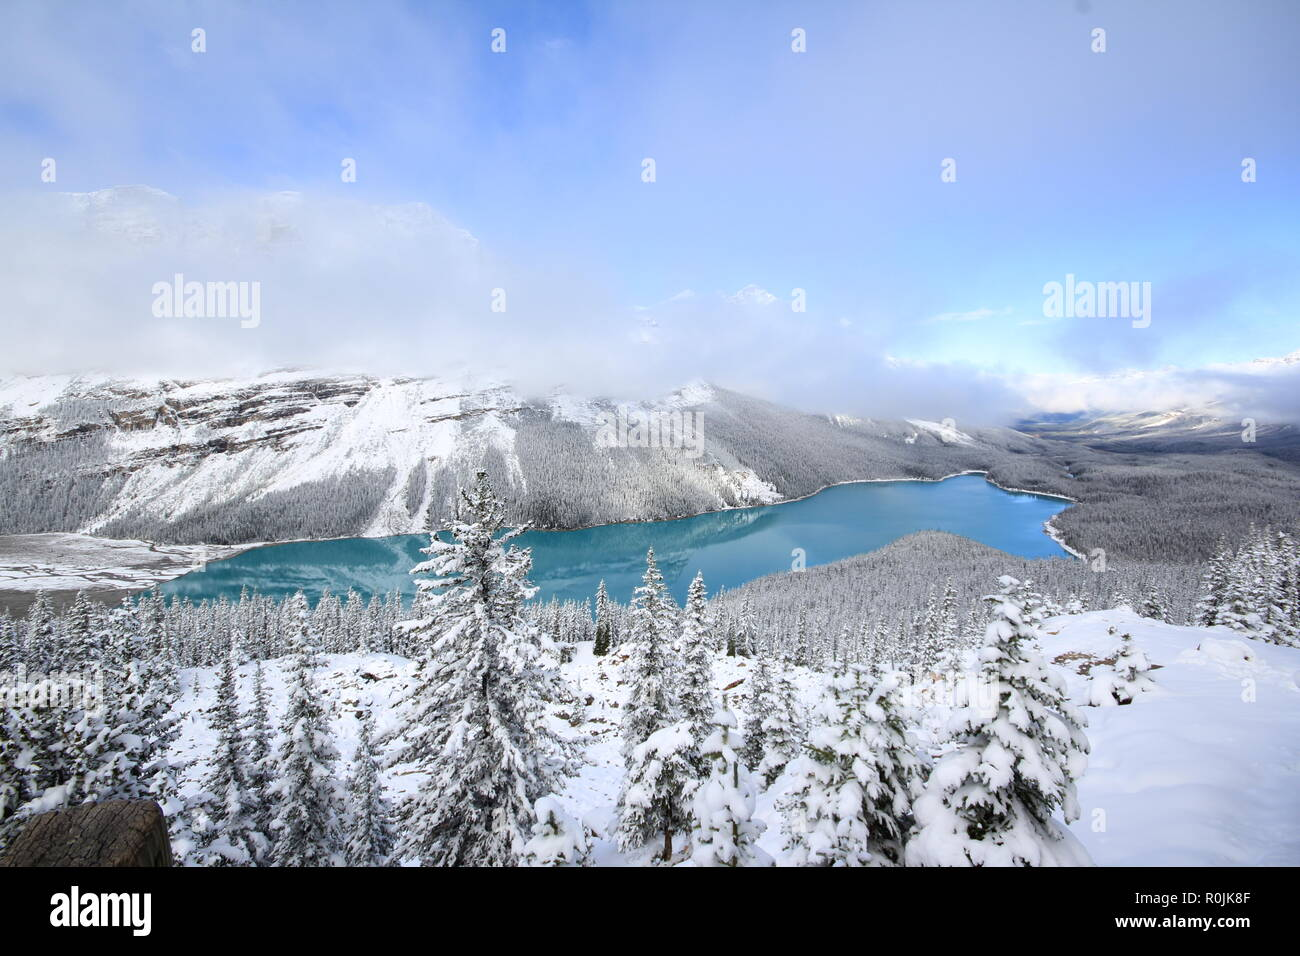 Spectacular winter scene at Peyto Lake in Banff National Park, Canada, with mountains and trees covered by snow.  Image of popular tour attraction. - Stock Image